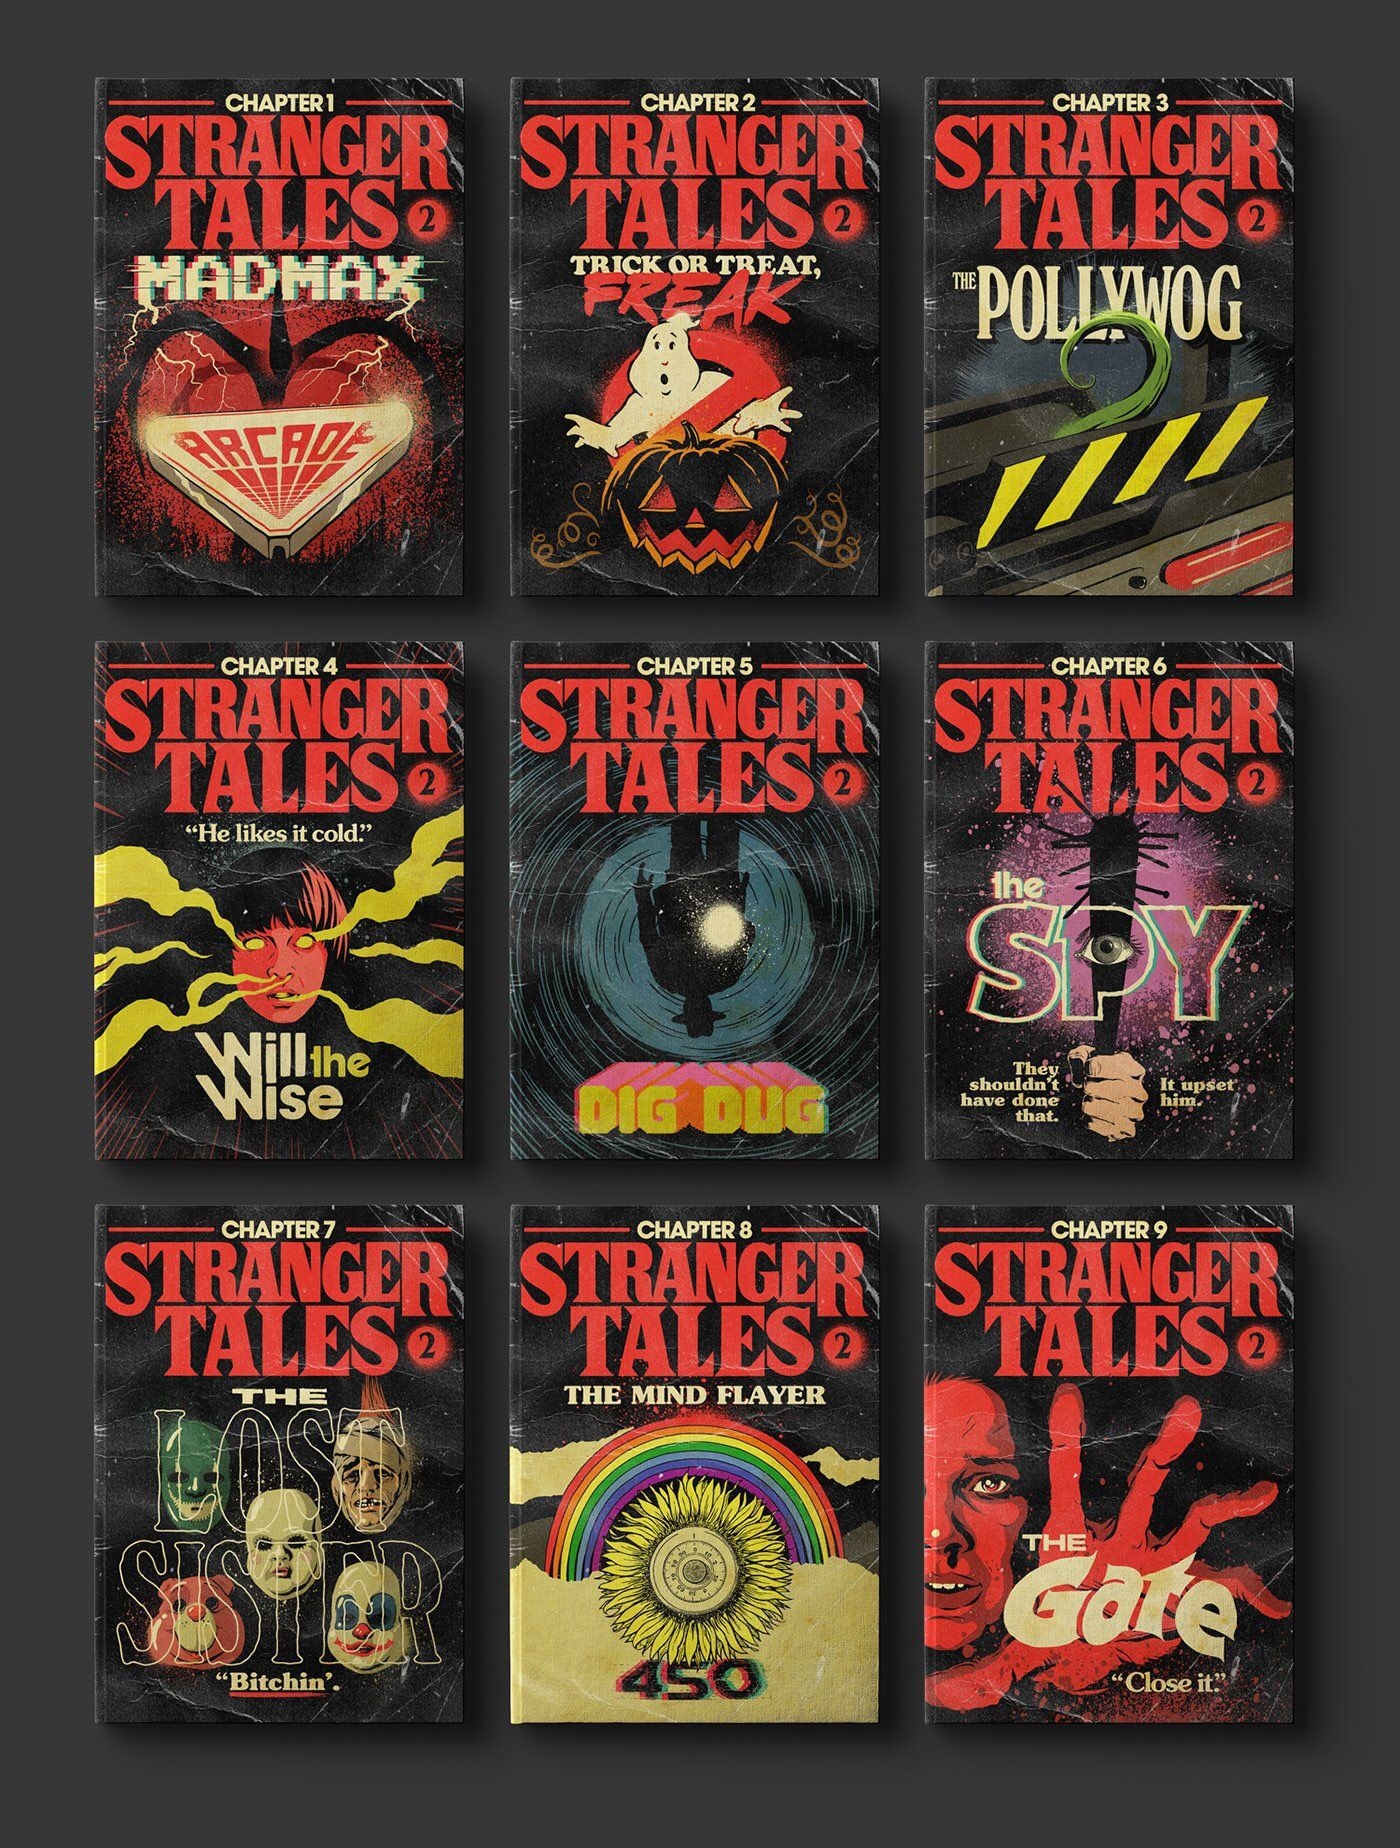 Stranger Things 2 Covers Inspired By Old Stephen King Novel